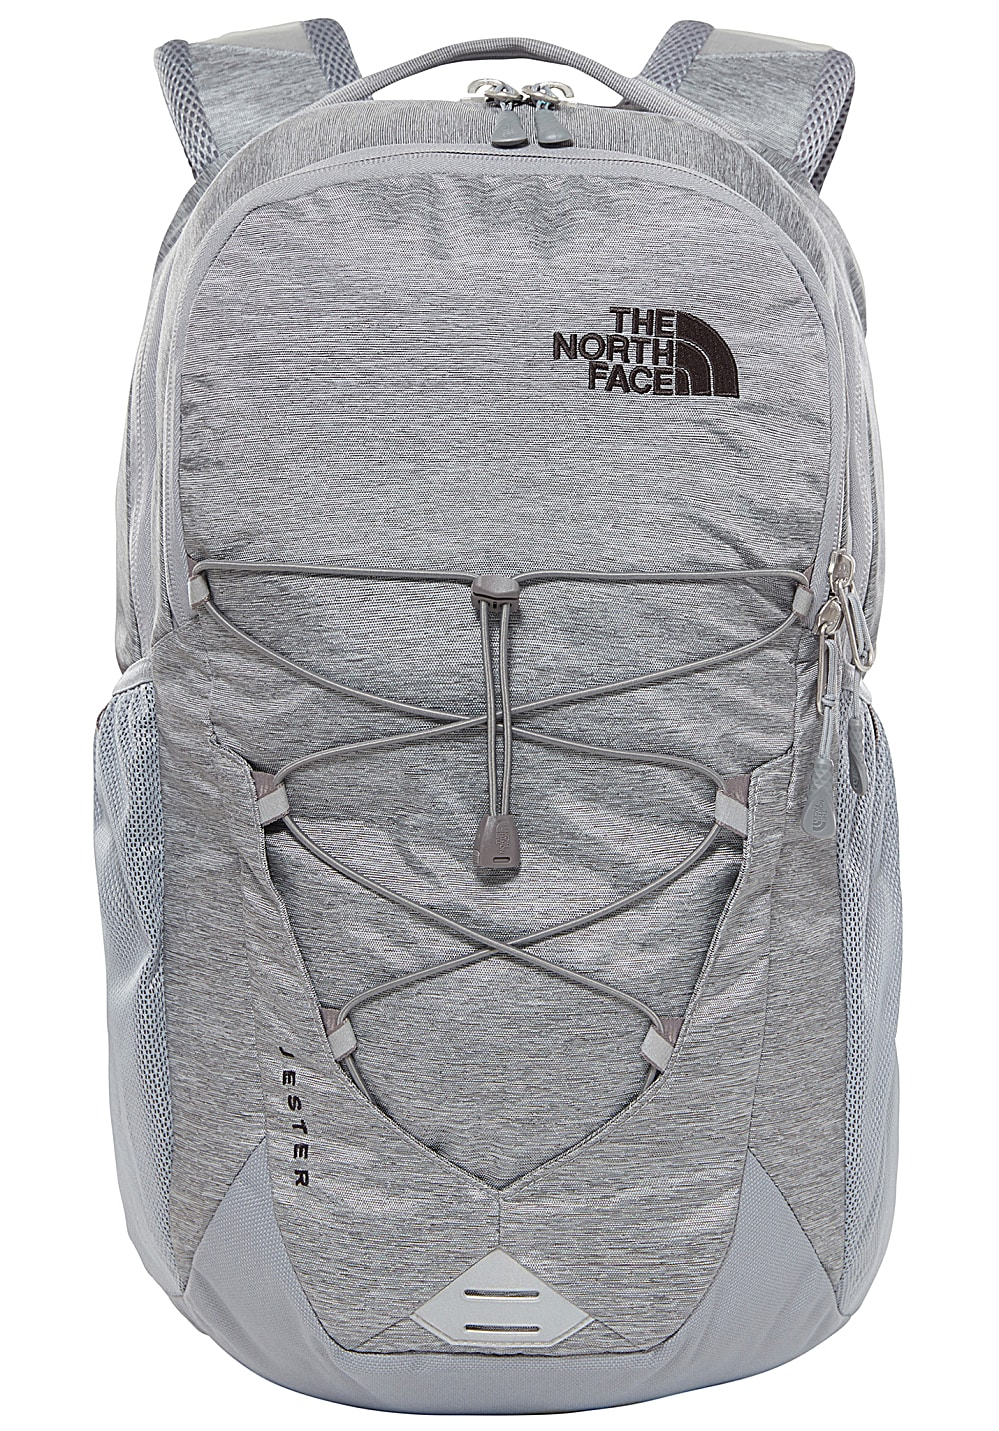 The North Face Jester Rucksack - Grau